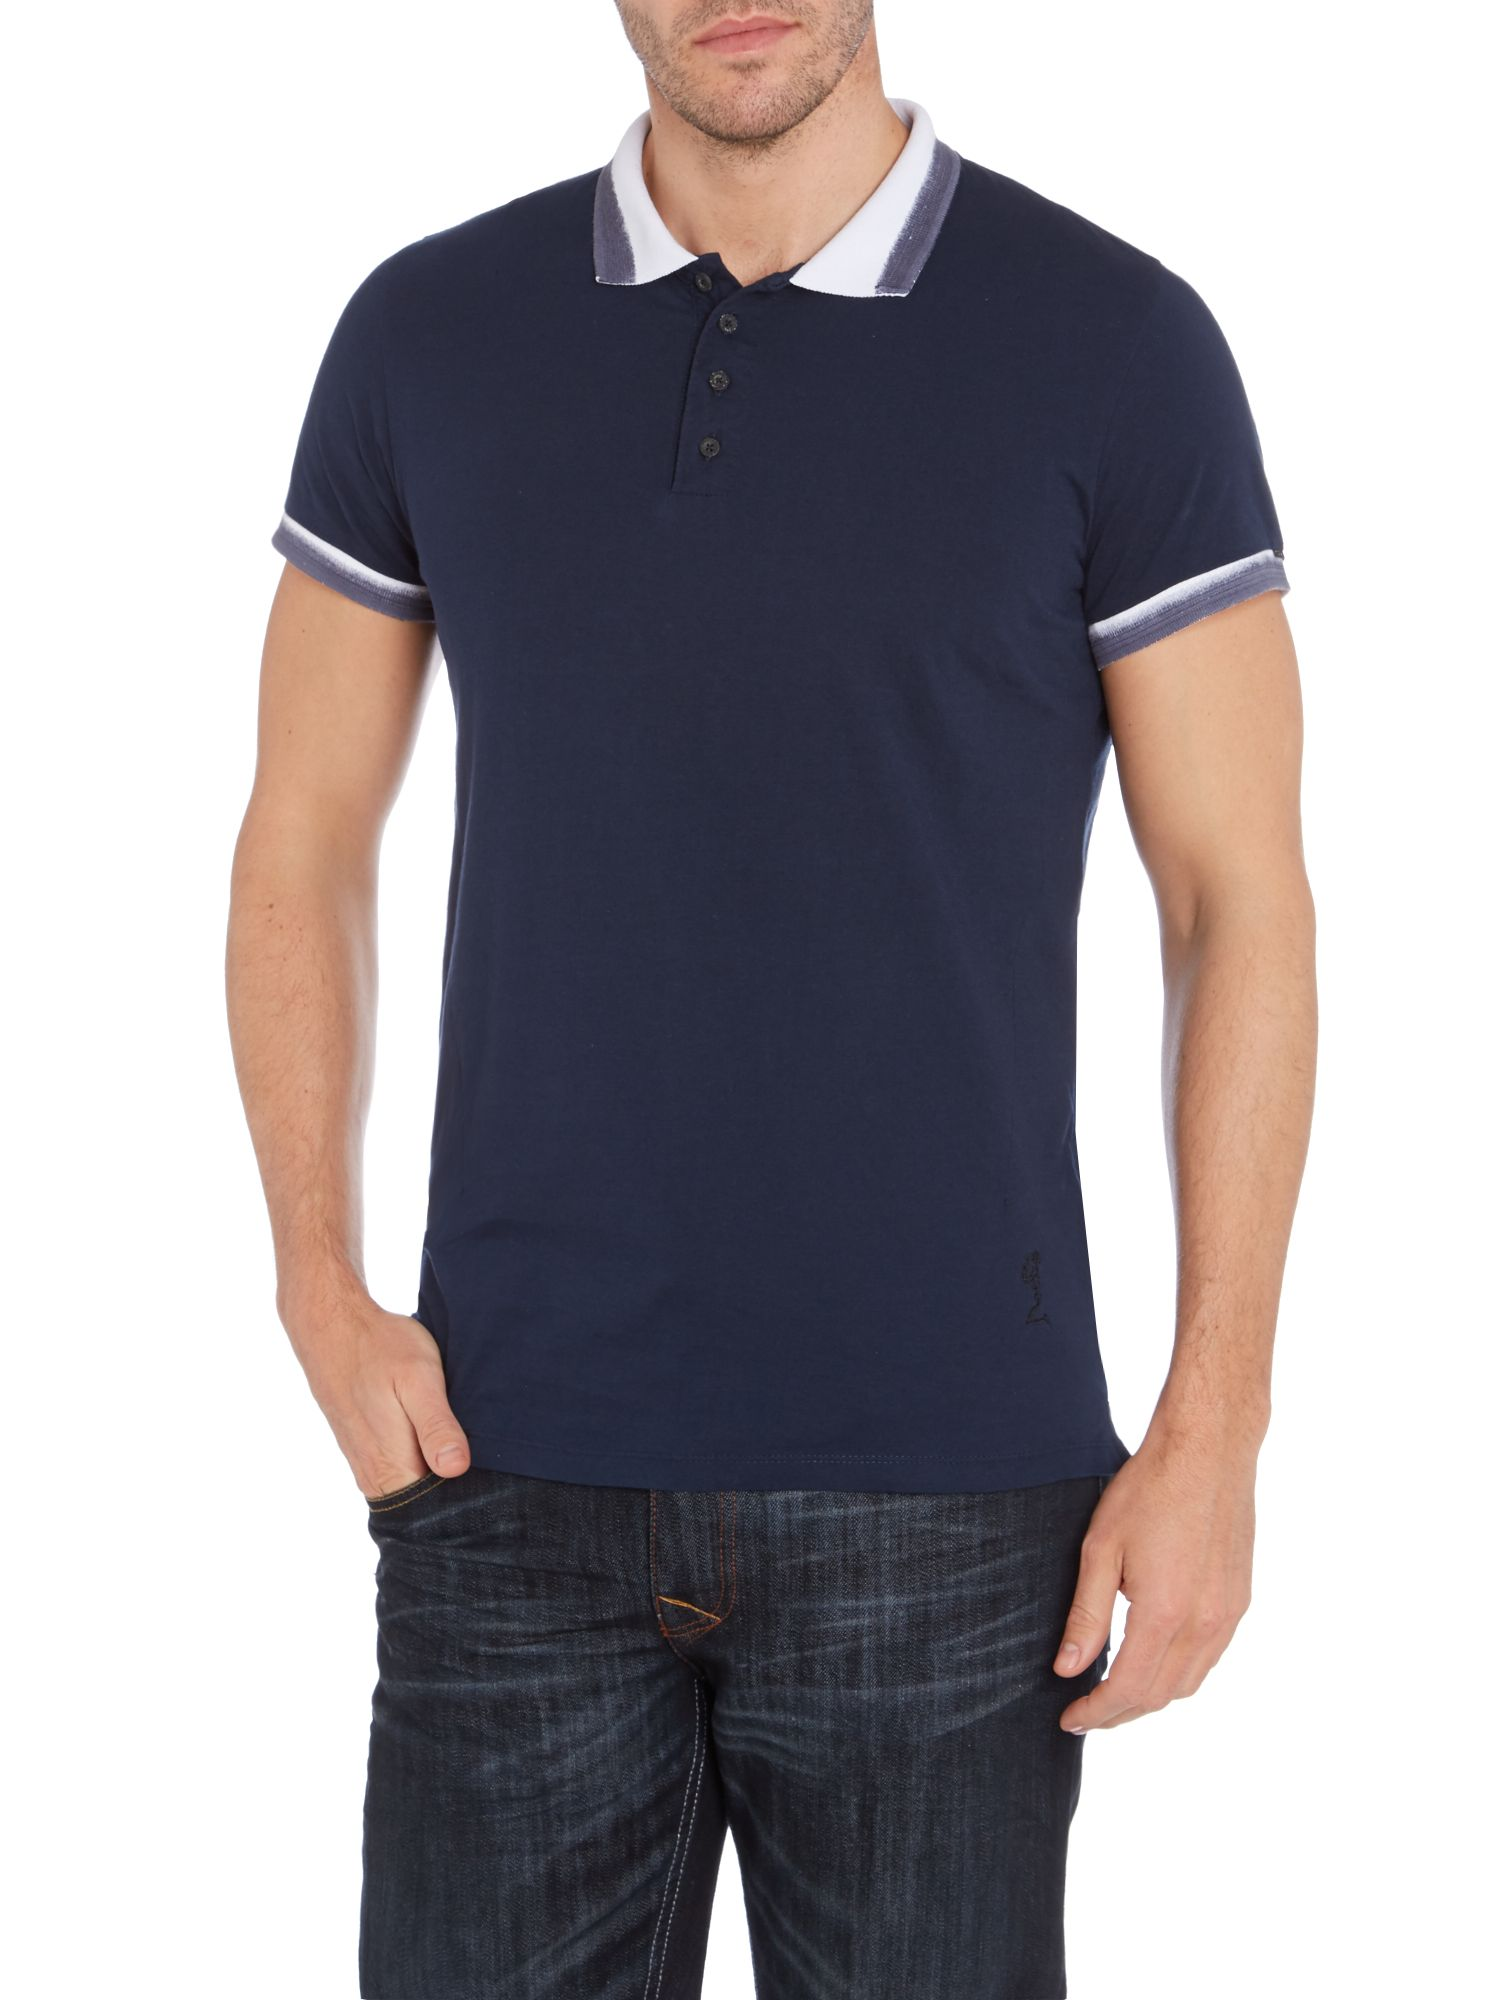 Dye collar polo shirt